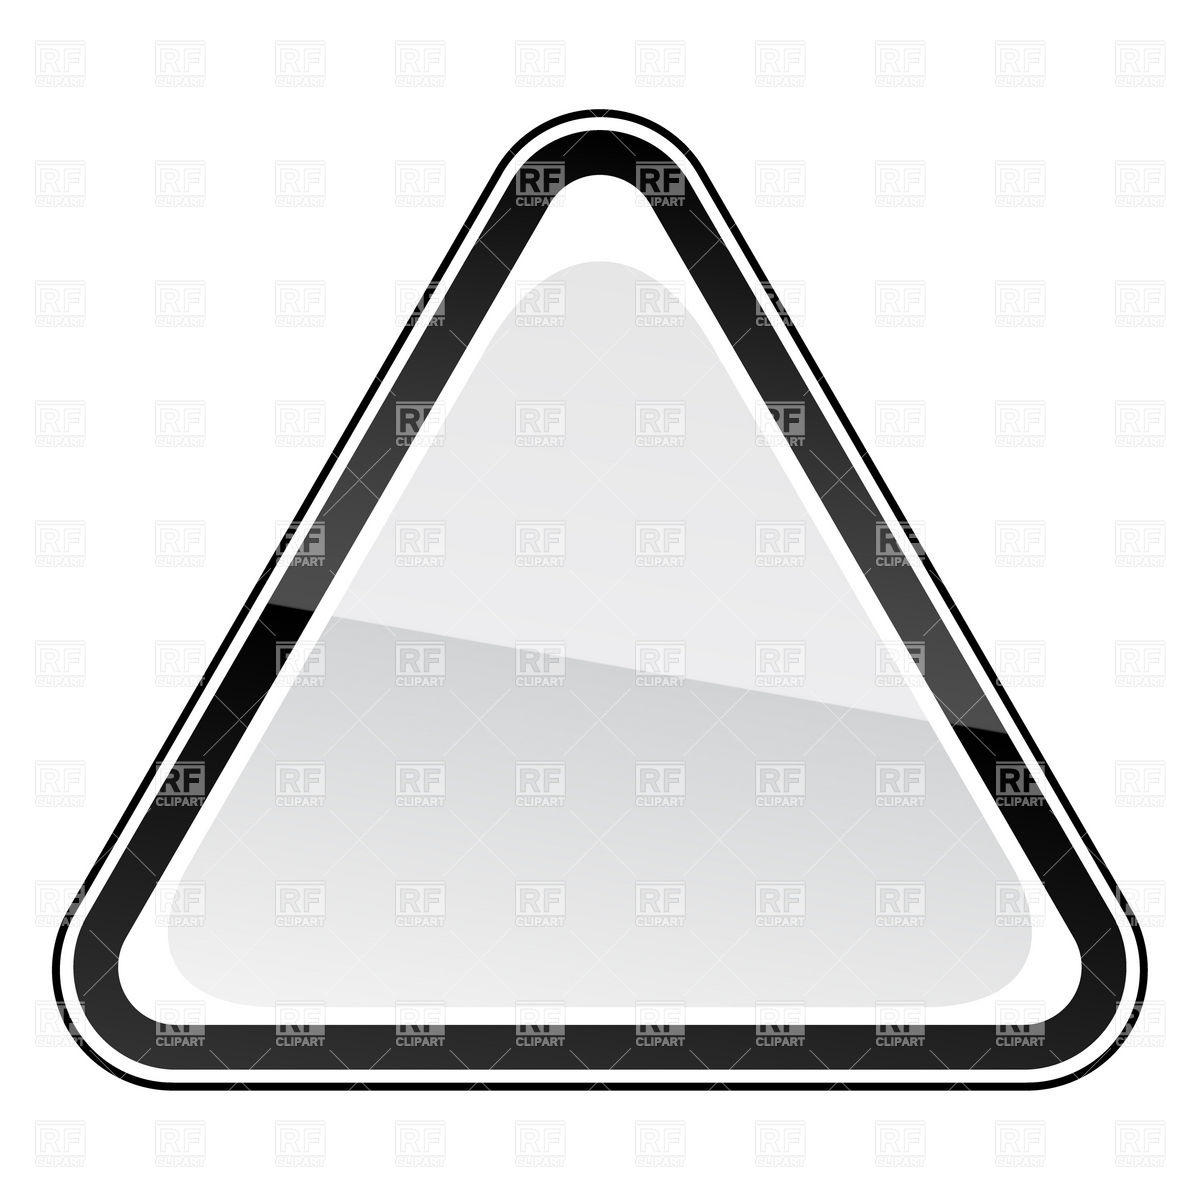 1200x1200 White Blank Three Cornered Road Sign With Black Border Vector